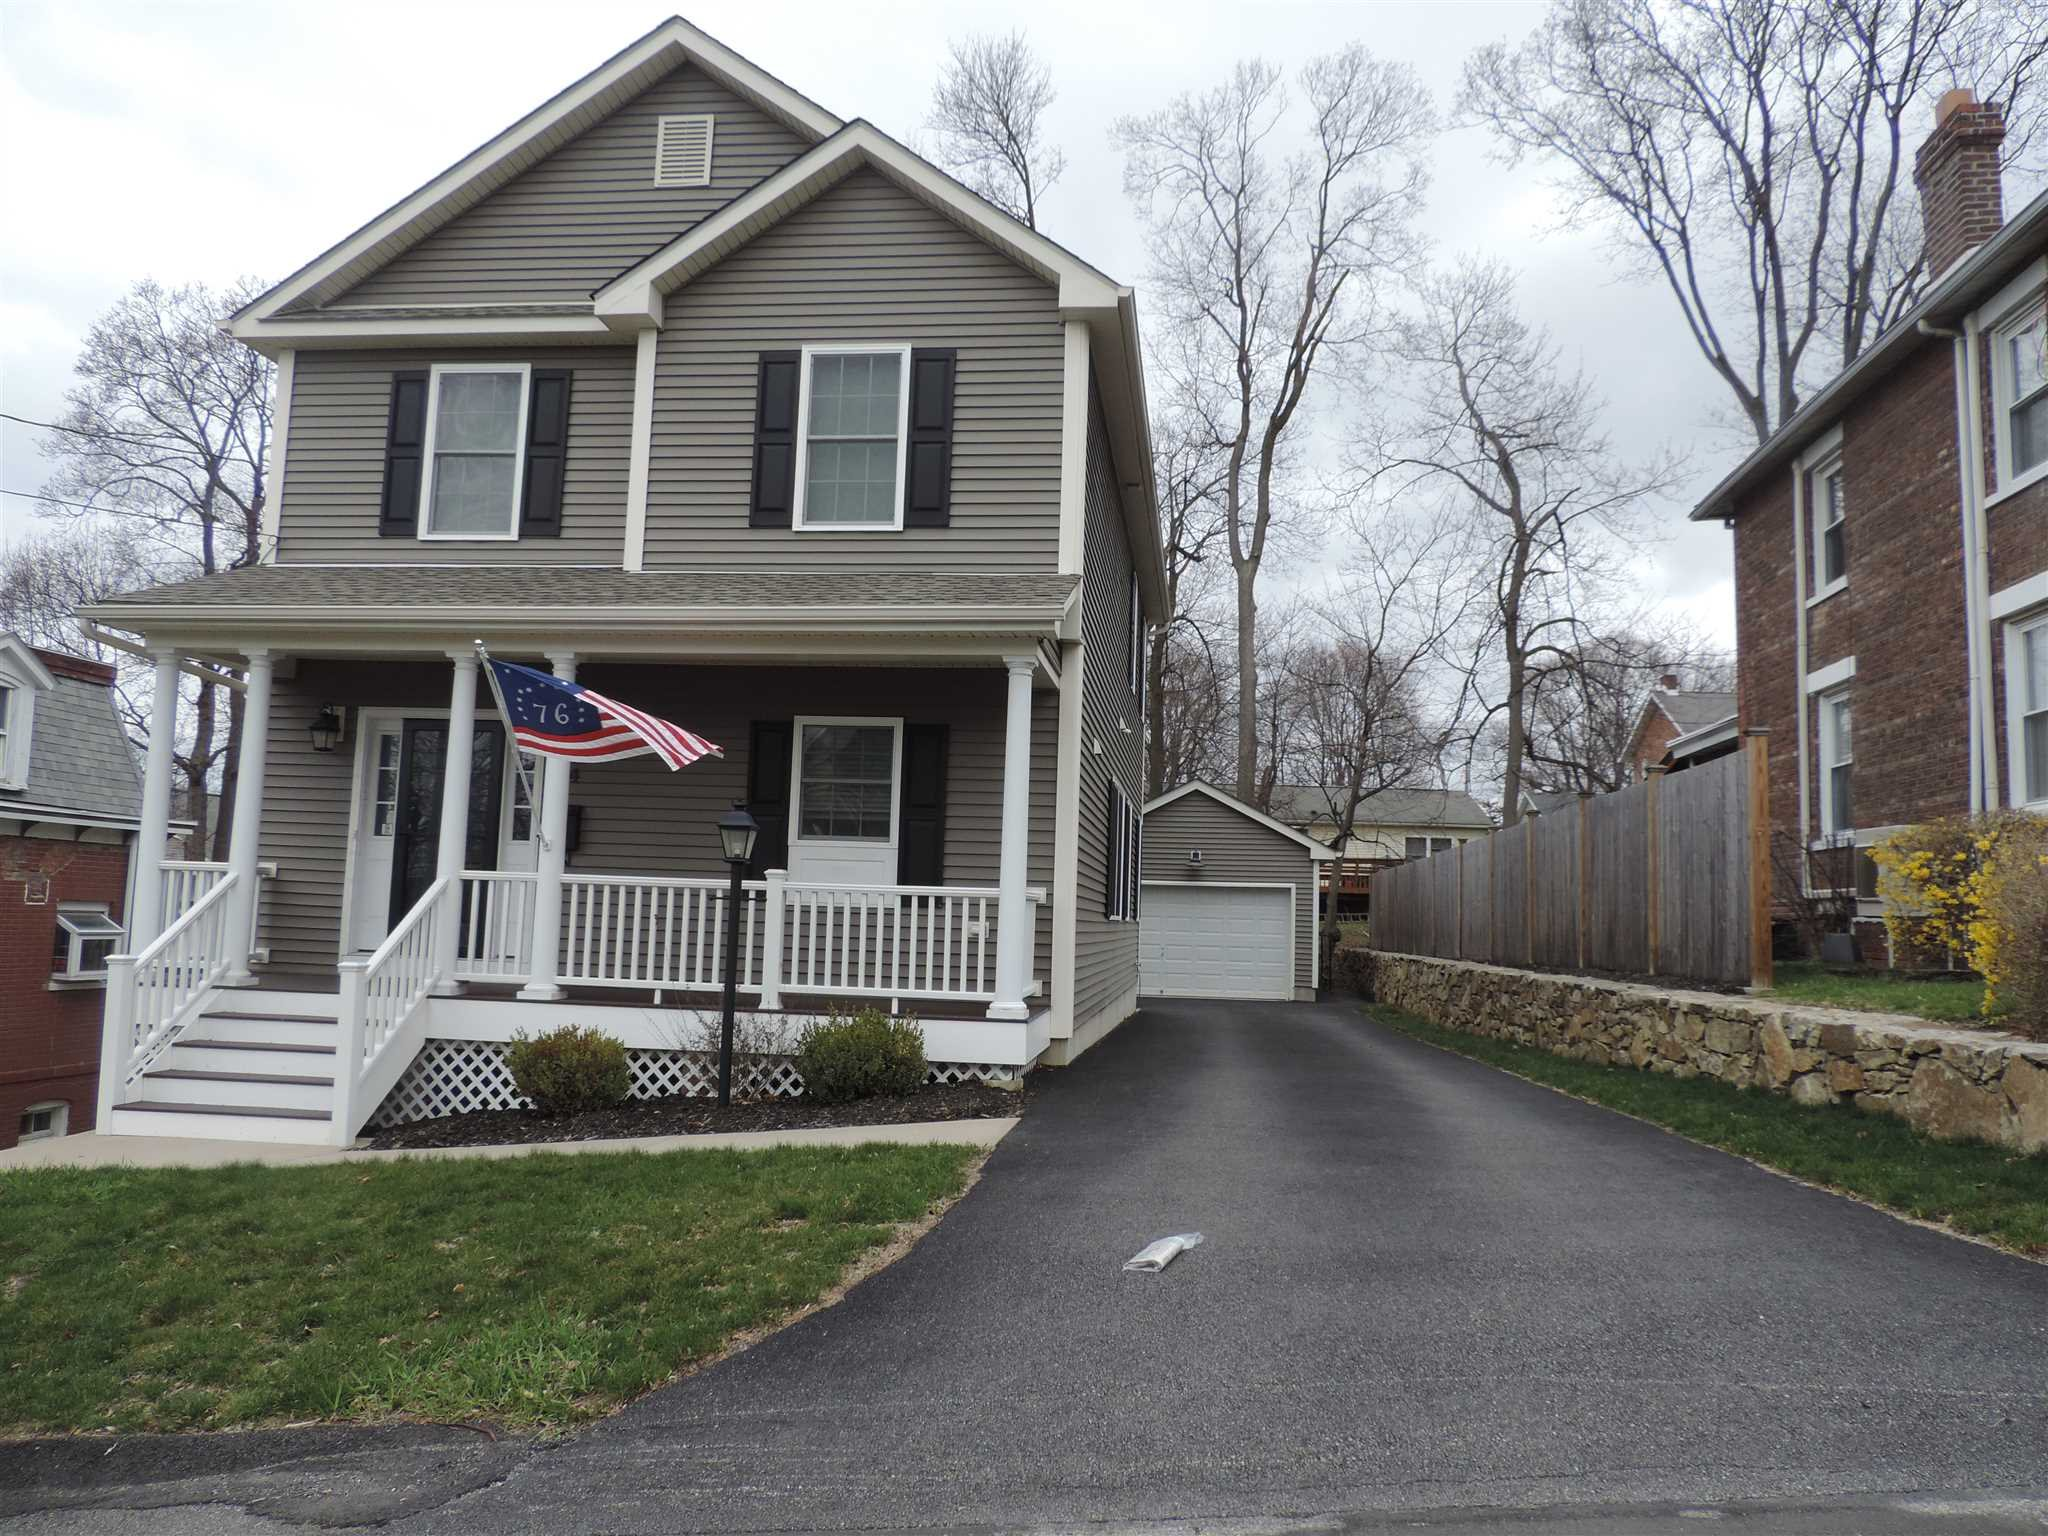 Single Family Home for Sale at 13 HILLSIDE Avenue 13 HILLSIDE Avenue Wappingers Falls, New York 12590 United States